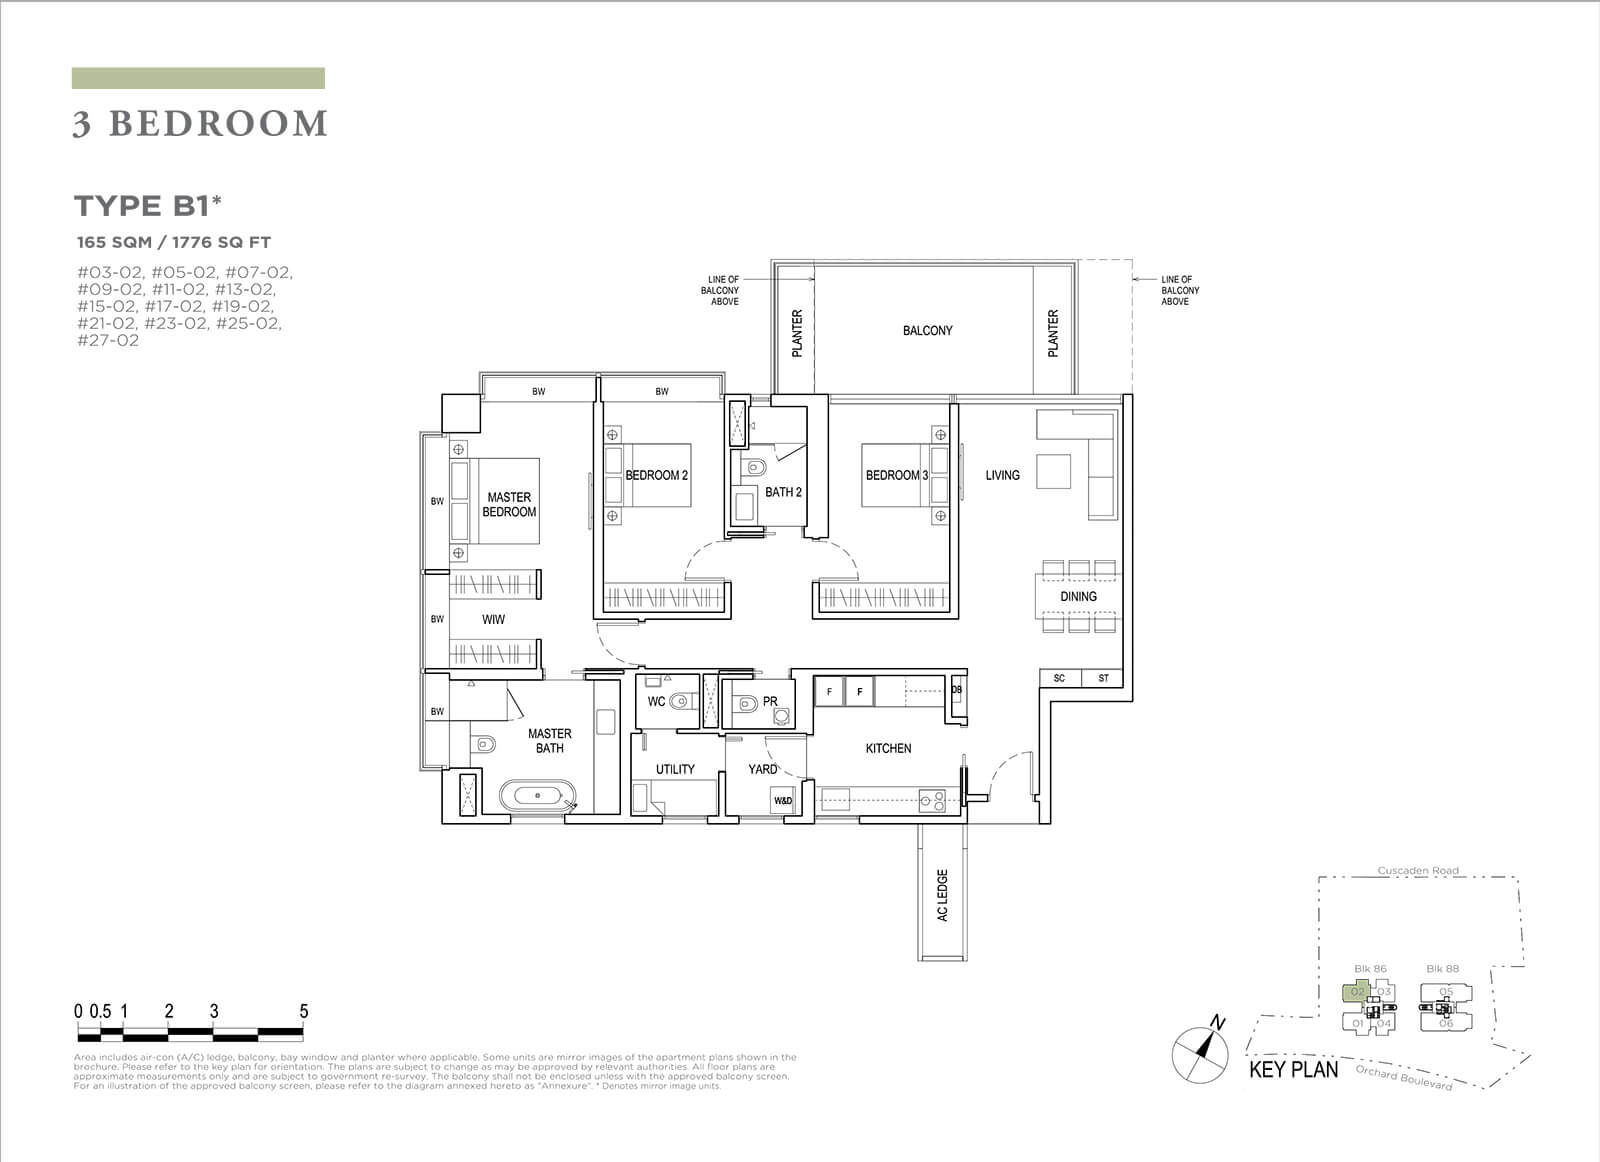 Boulevard 88 Floor Plan 3 Bedroom Type B1